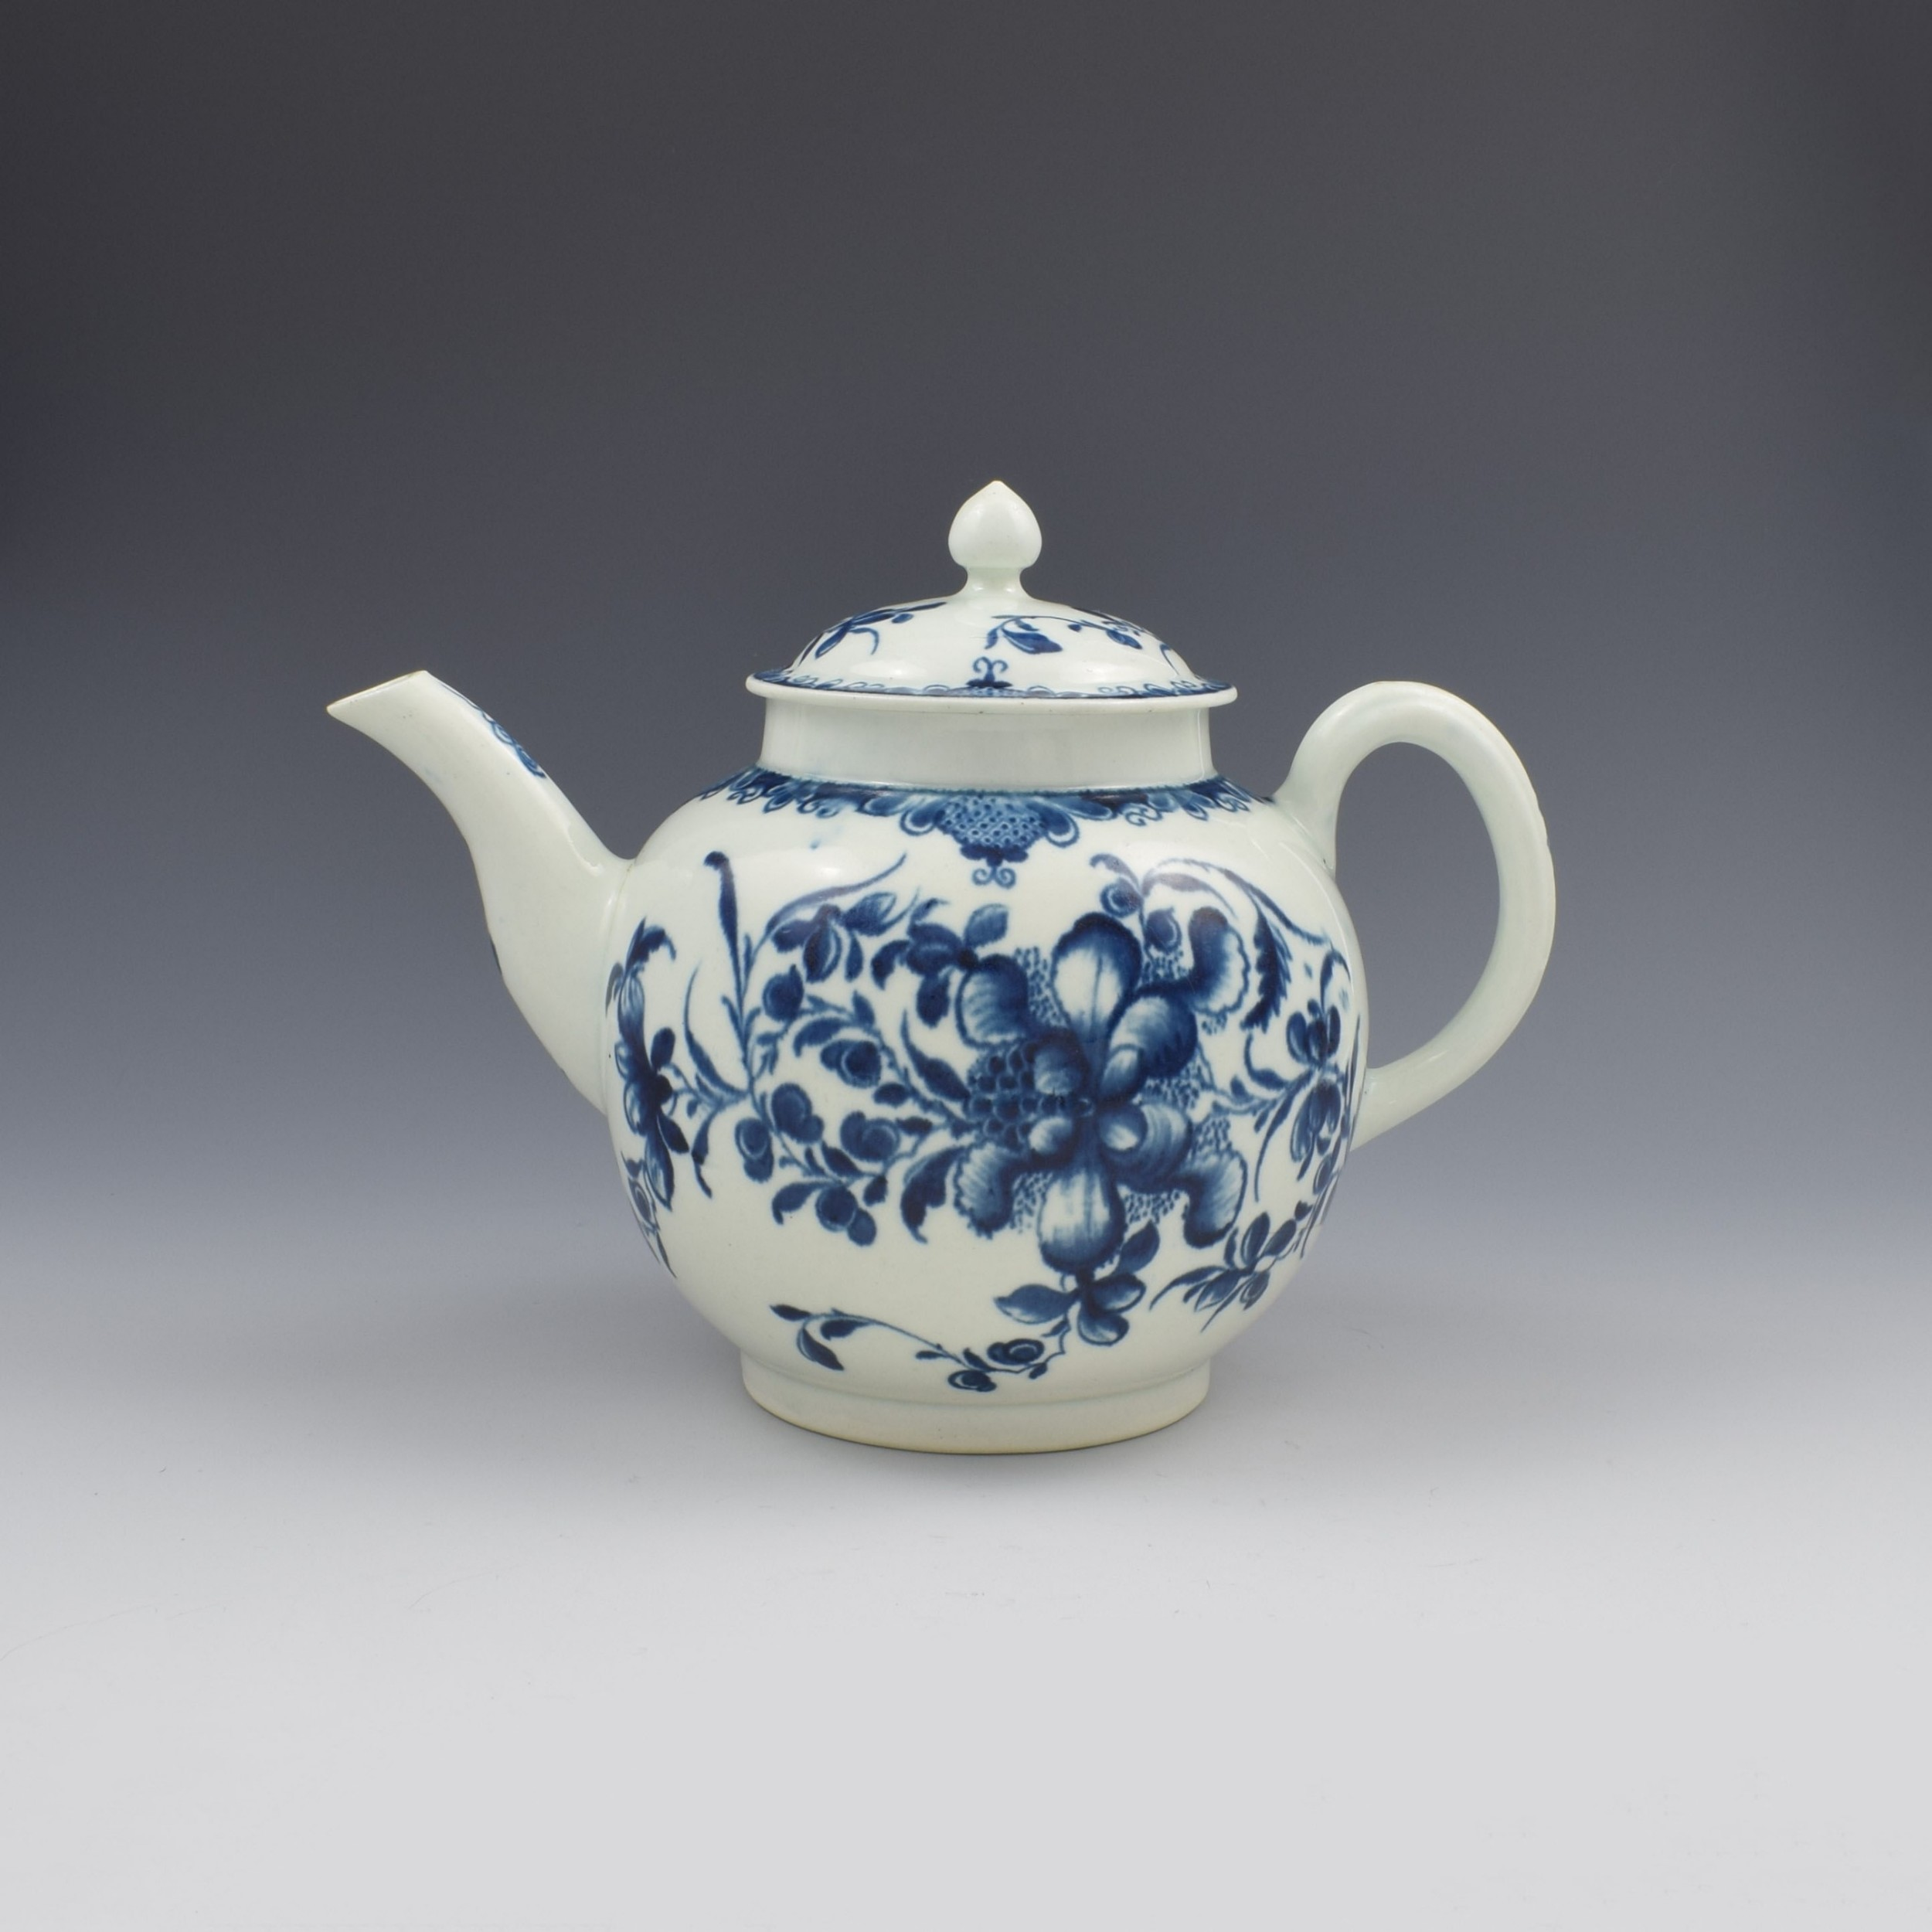 large first period worcester porcelain mansfield pattern teapot c1775